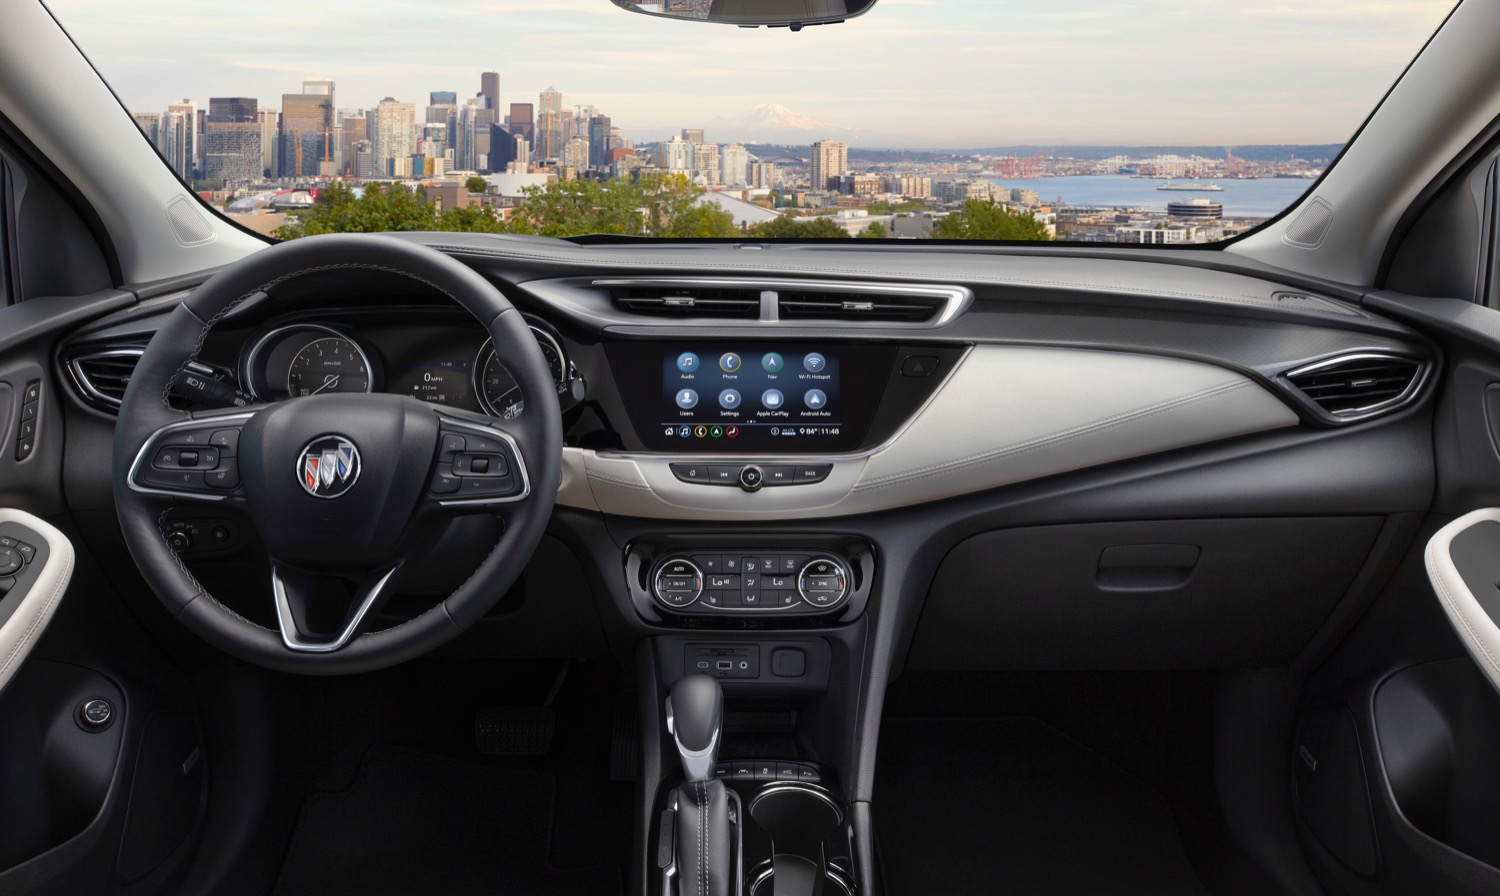 2021 Buick Encore Gx Interior Colors | Gm Authority New 2022 Buick Encore Release Date, Specifications, Exterior Colors